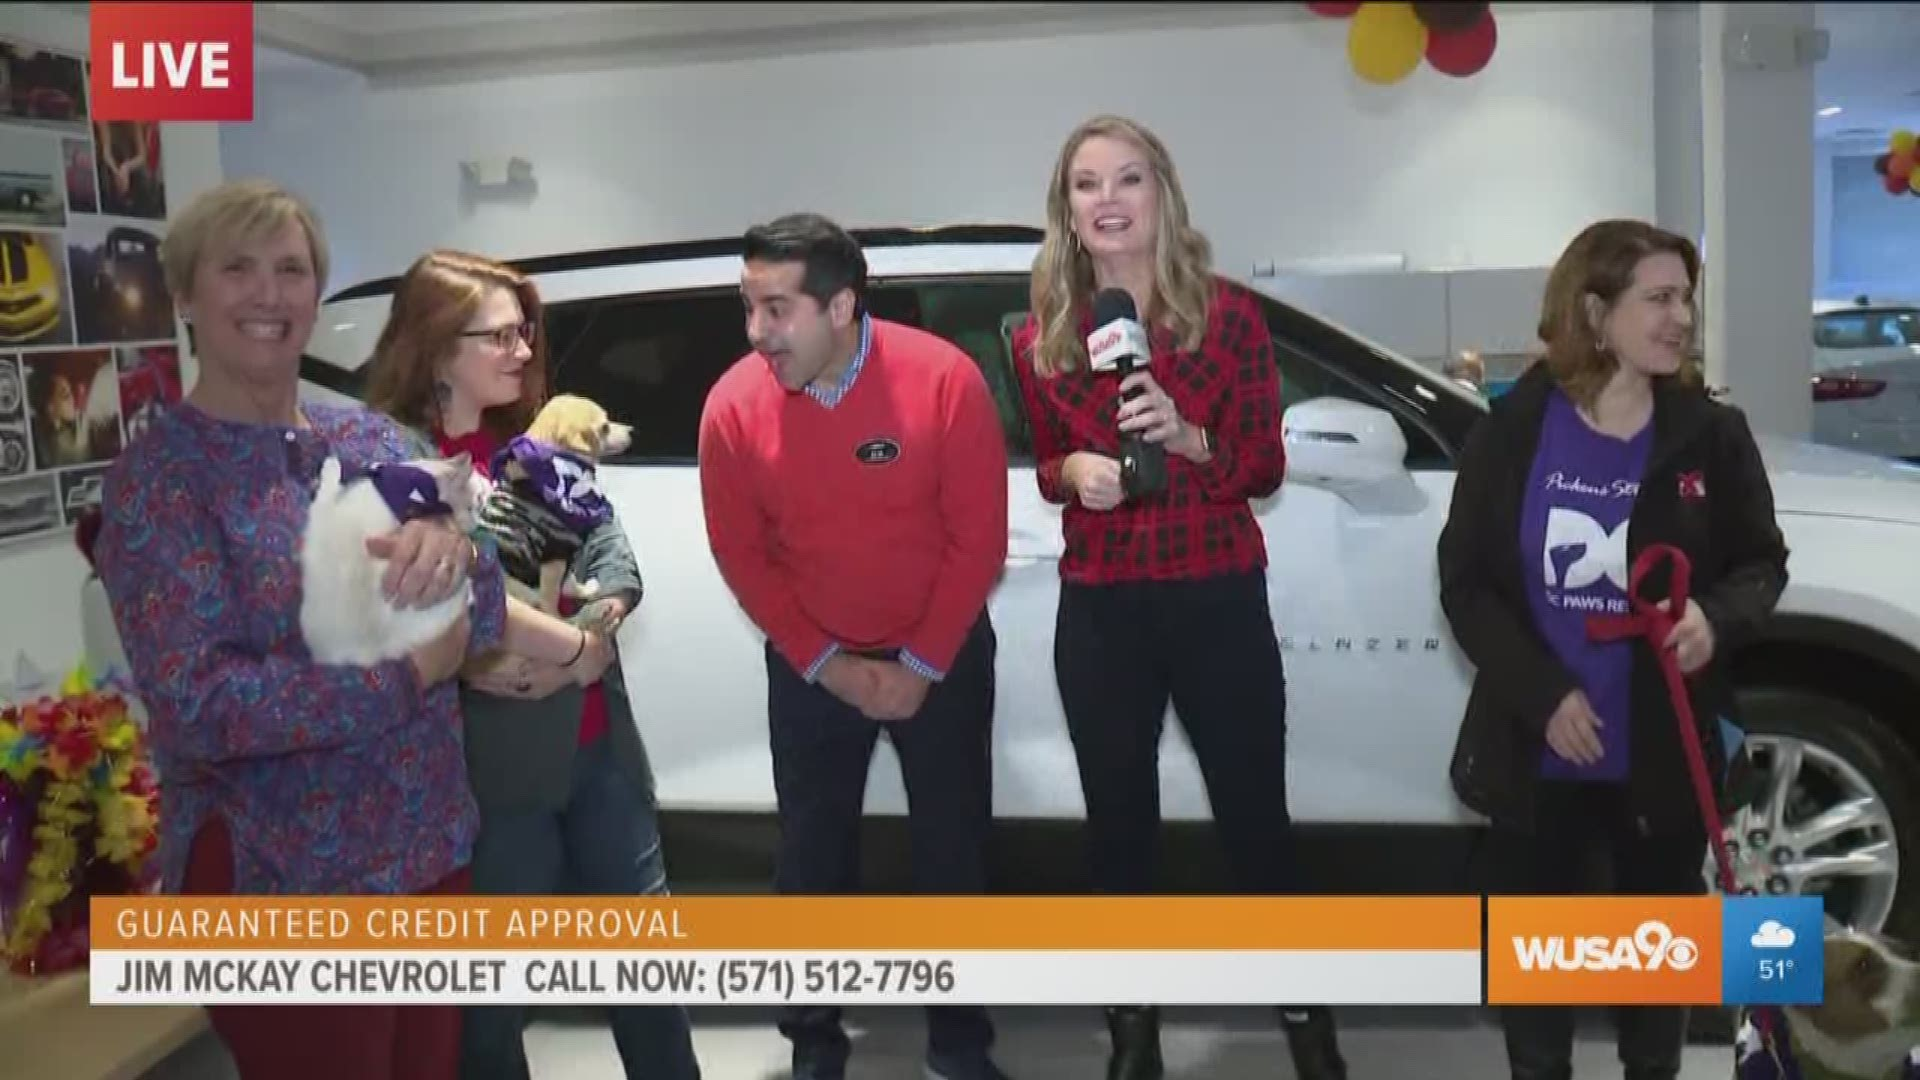 Buy Your Dream Car And Save An Animal At Jim Mckay Chevrolet Wusa9 Com